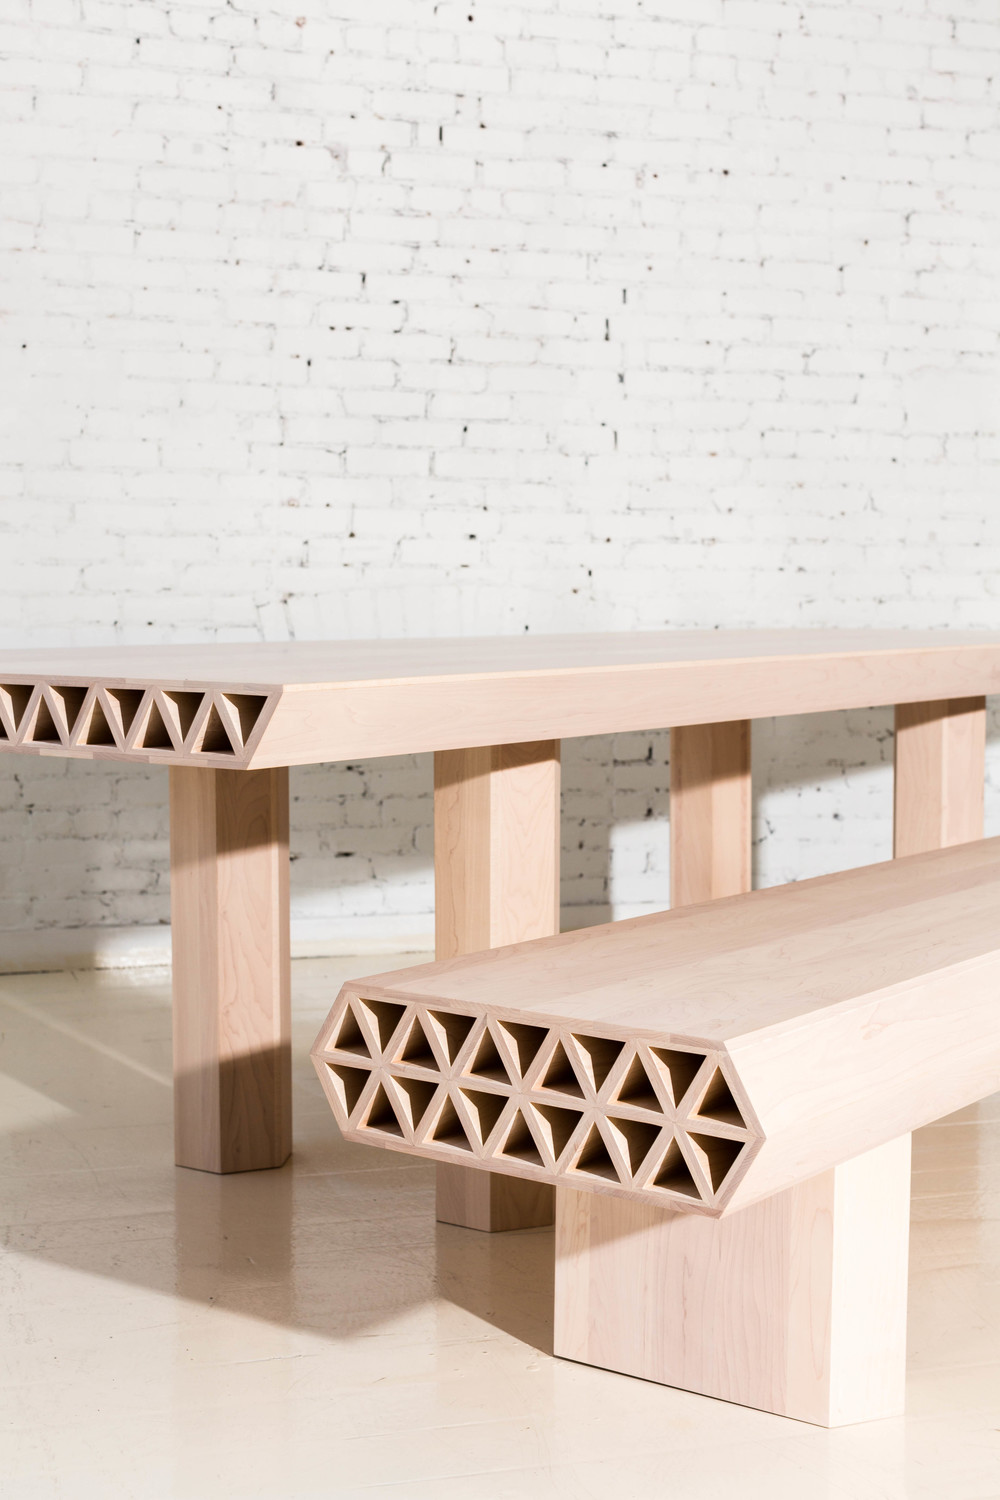 The Assemblage Wood Dining Table and Bench, from 'Qualities of Material' by Fort Standard